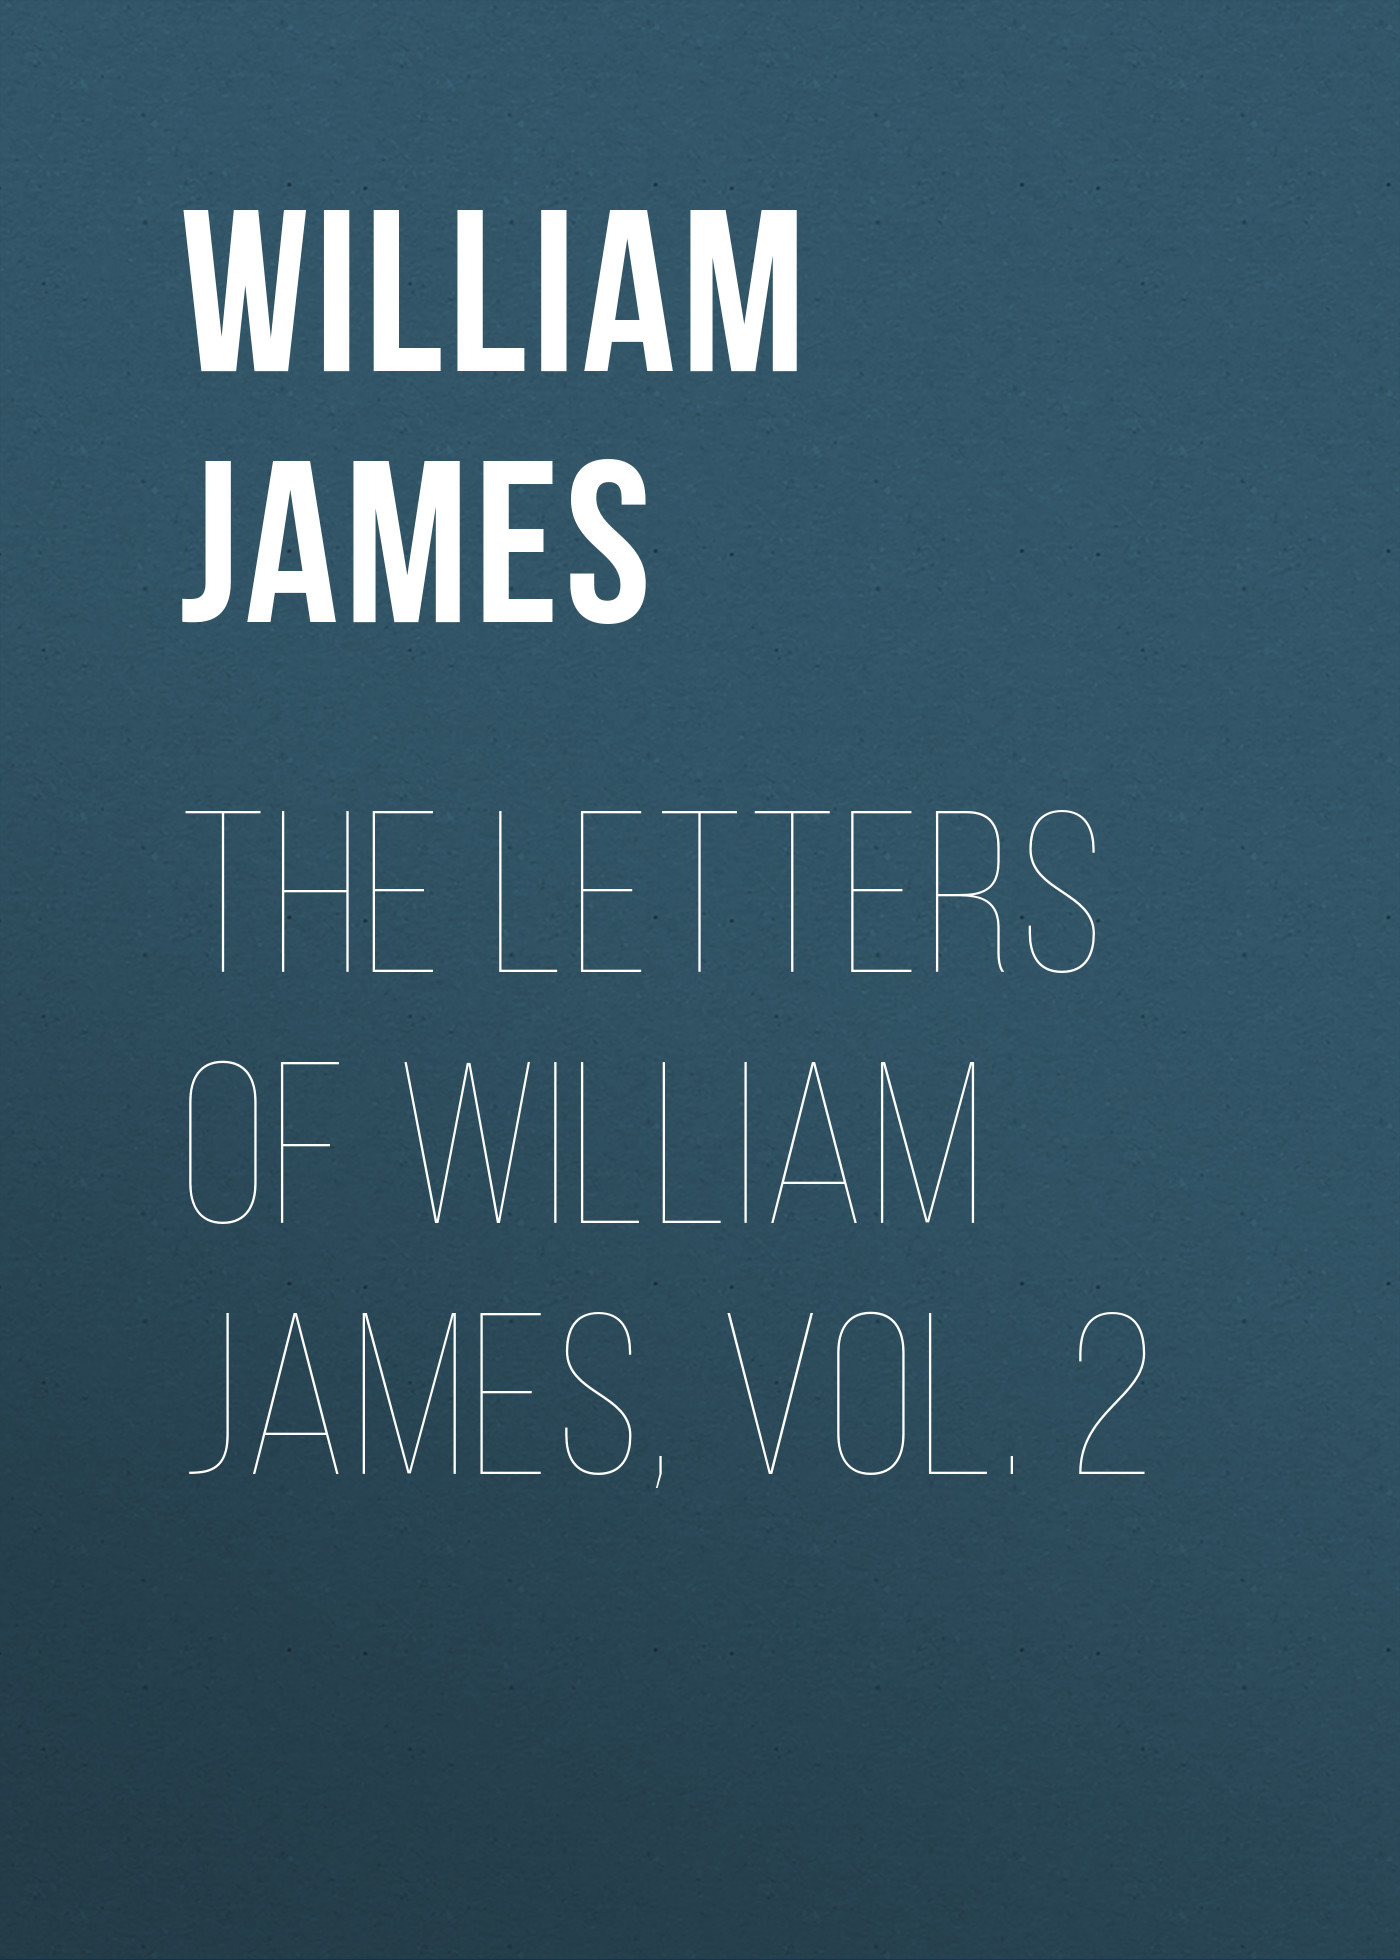 William James The Letters of William James, Vol. 2 shakespeare william rdr cd [lv 2] romeo and juliet